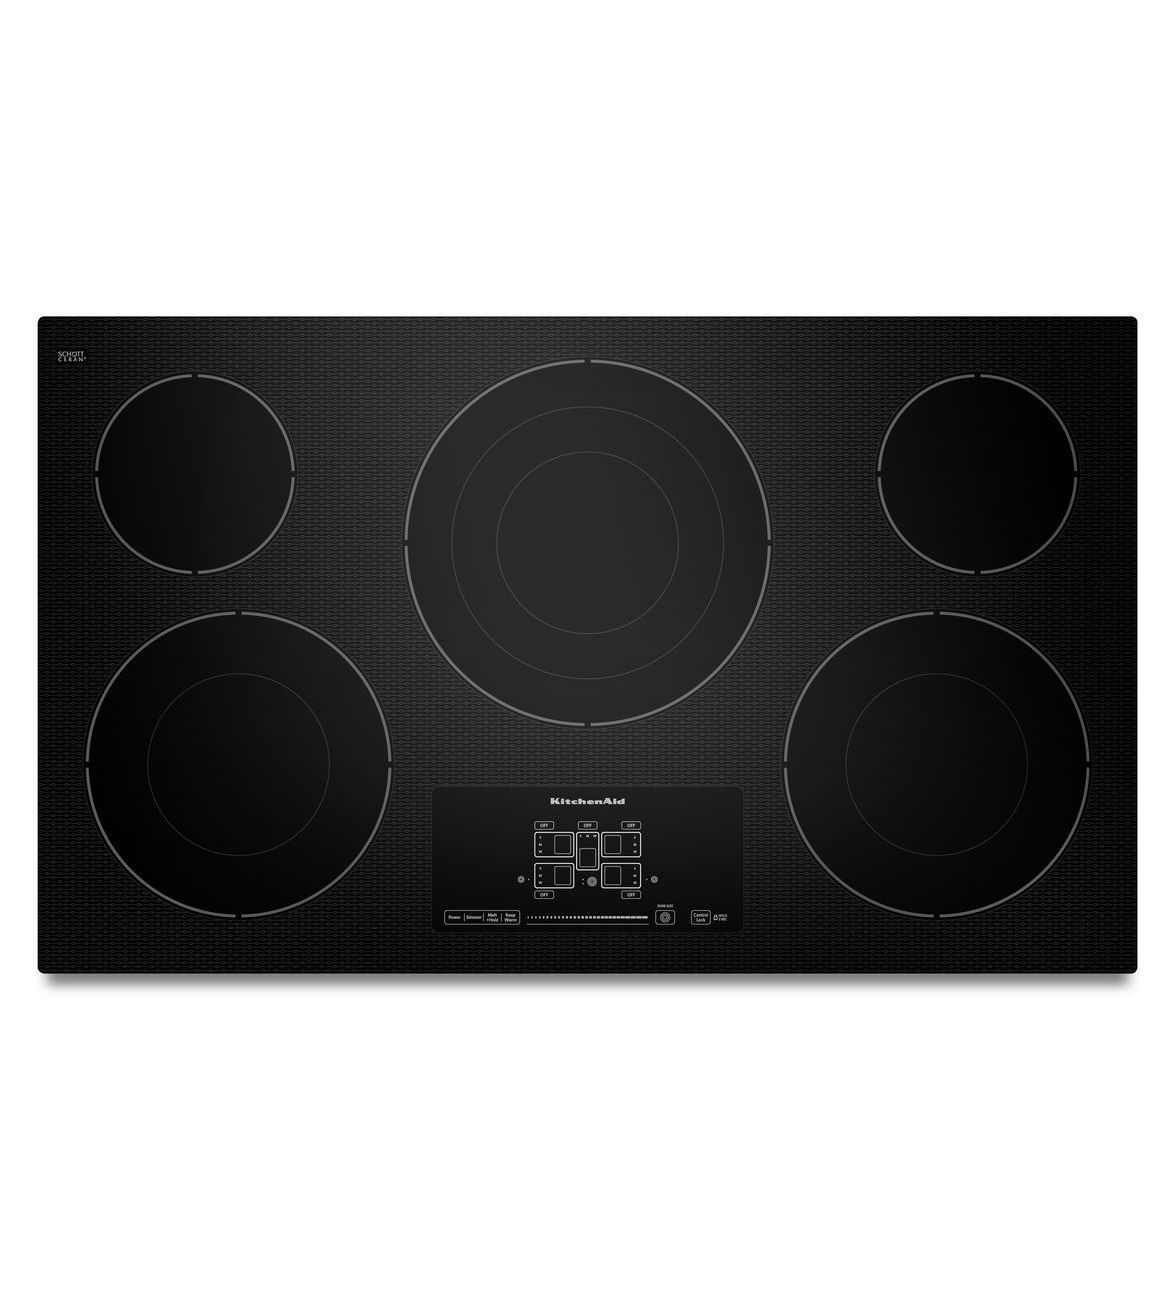 Kitchenaid 36 Inch 5 Element Electric Cooktop With Even Heat Technology And Touch Activated Controls Electric Cooktop Kitchen Aid Glass Cooktop